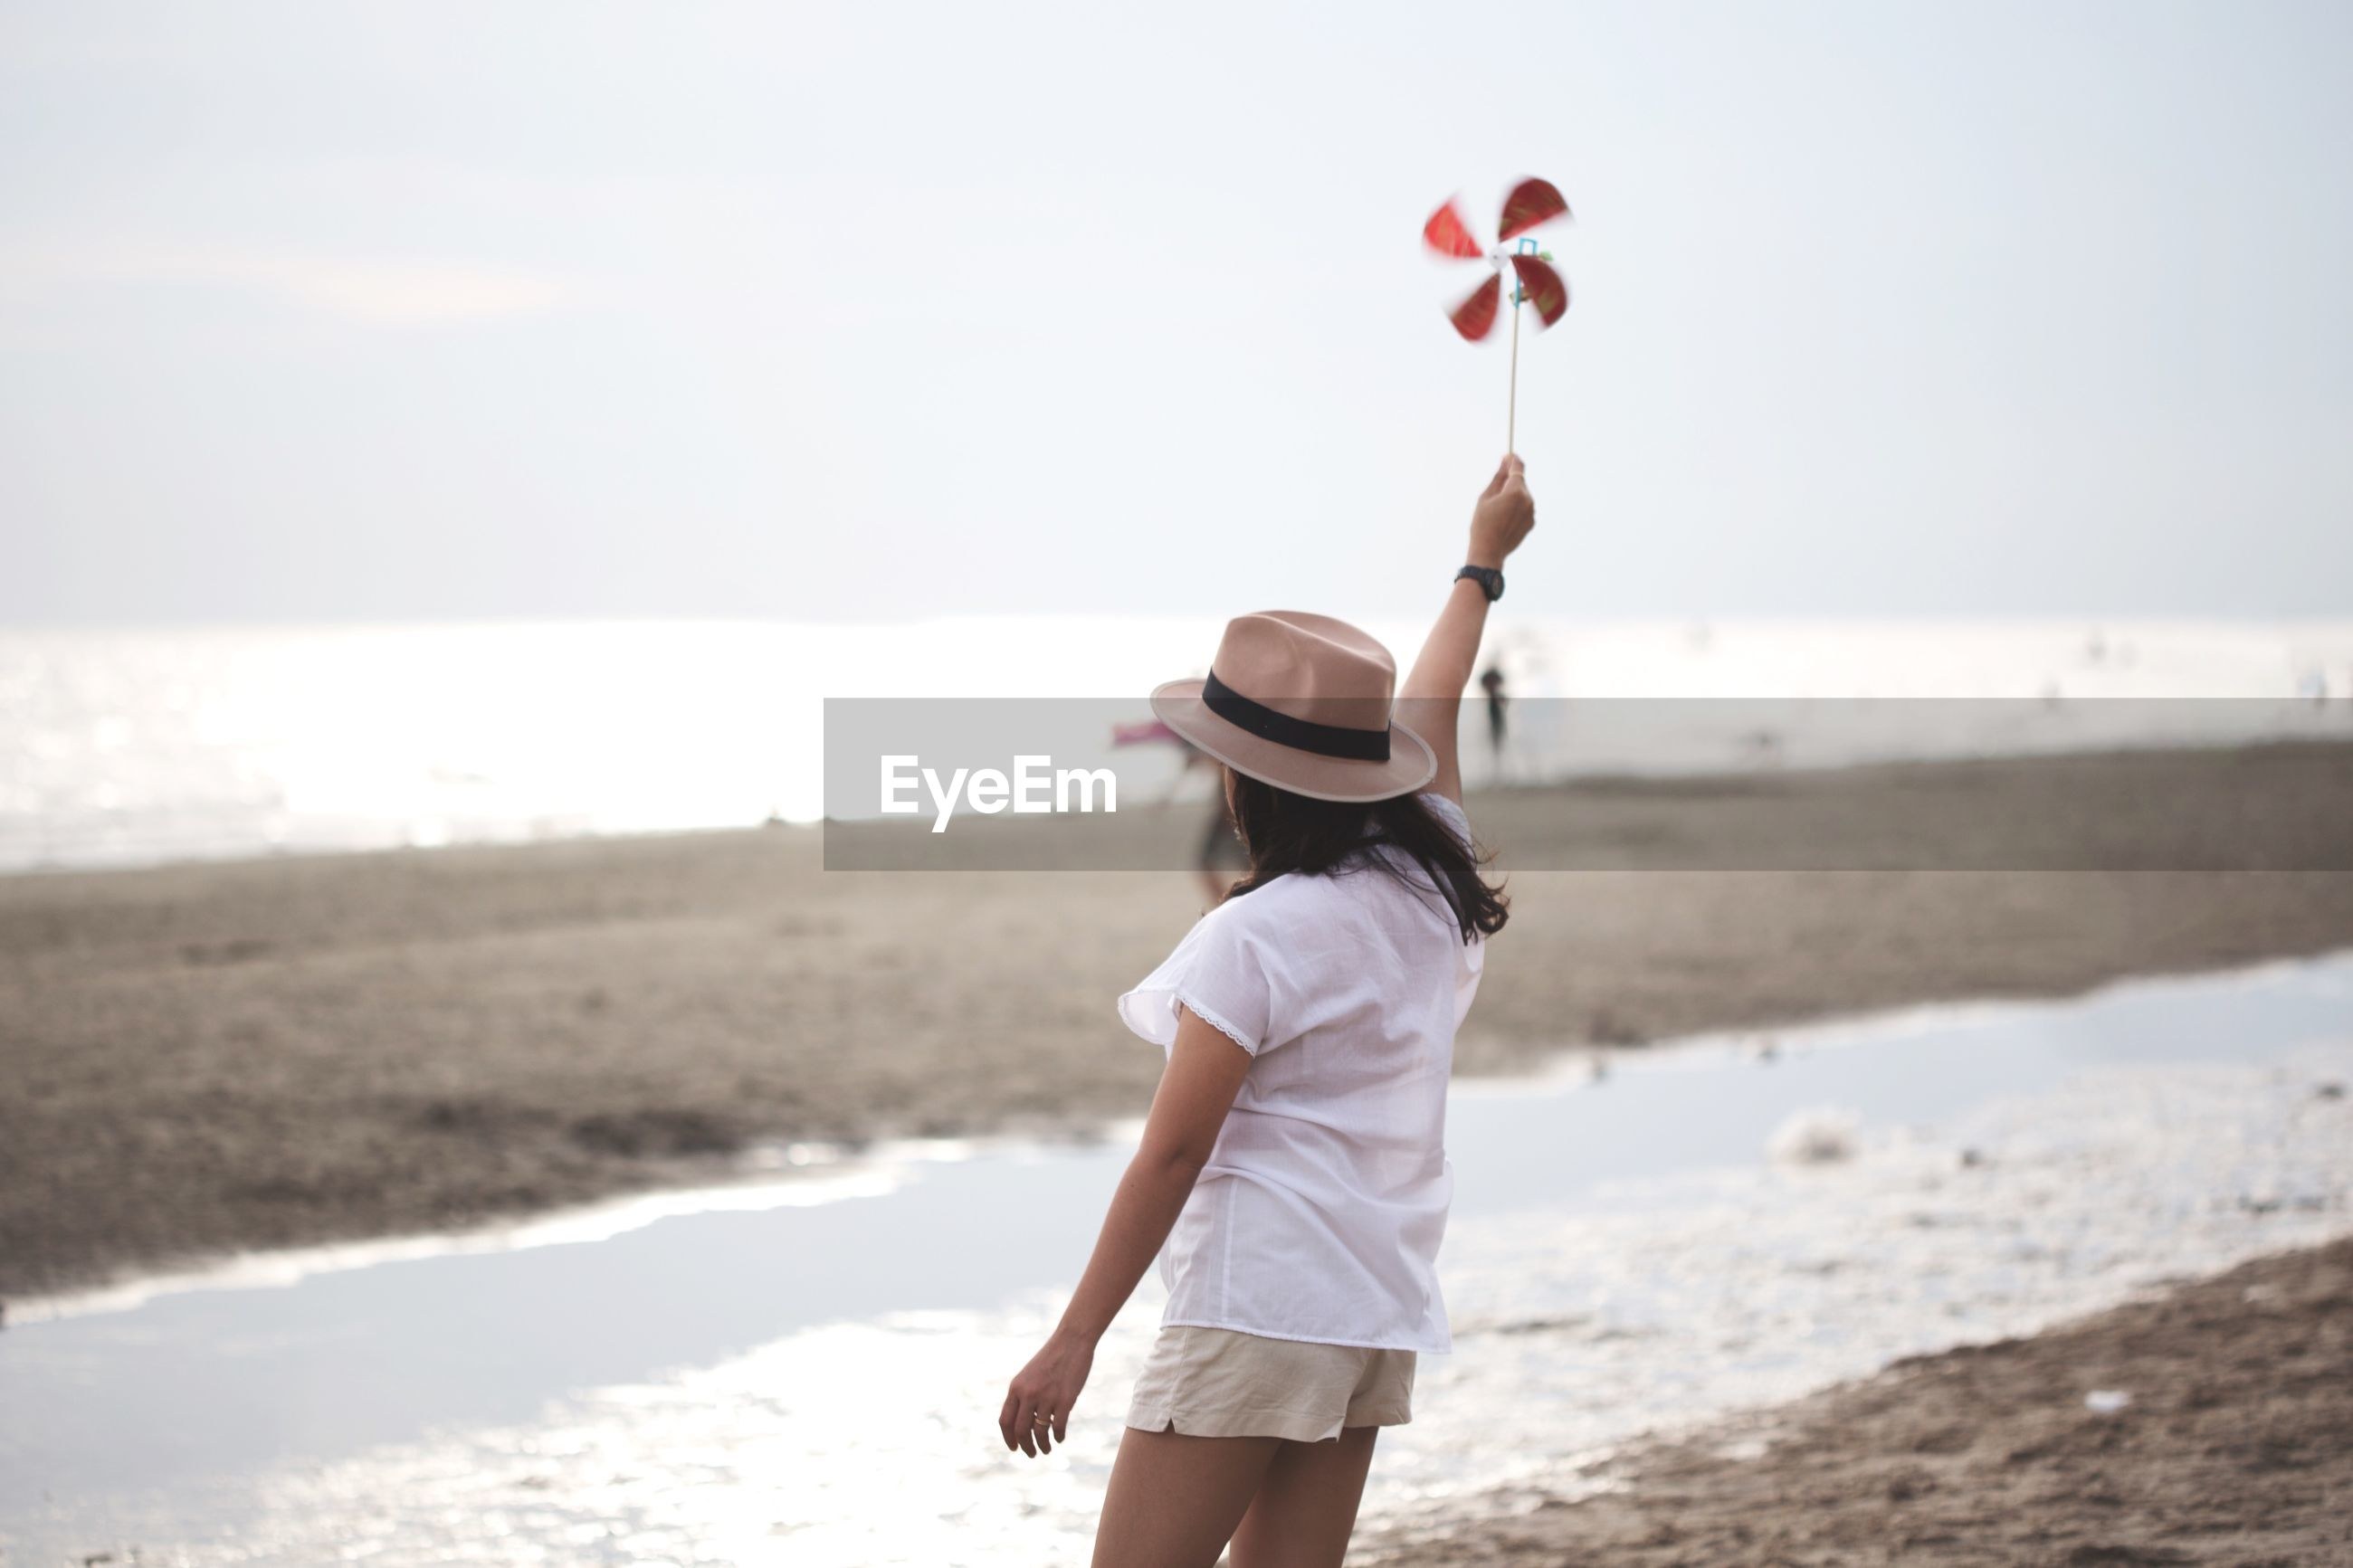 Woman holding pinwheel toy while standing at beach against sky